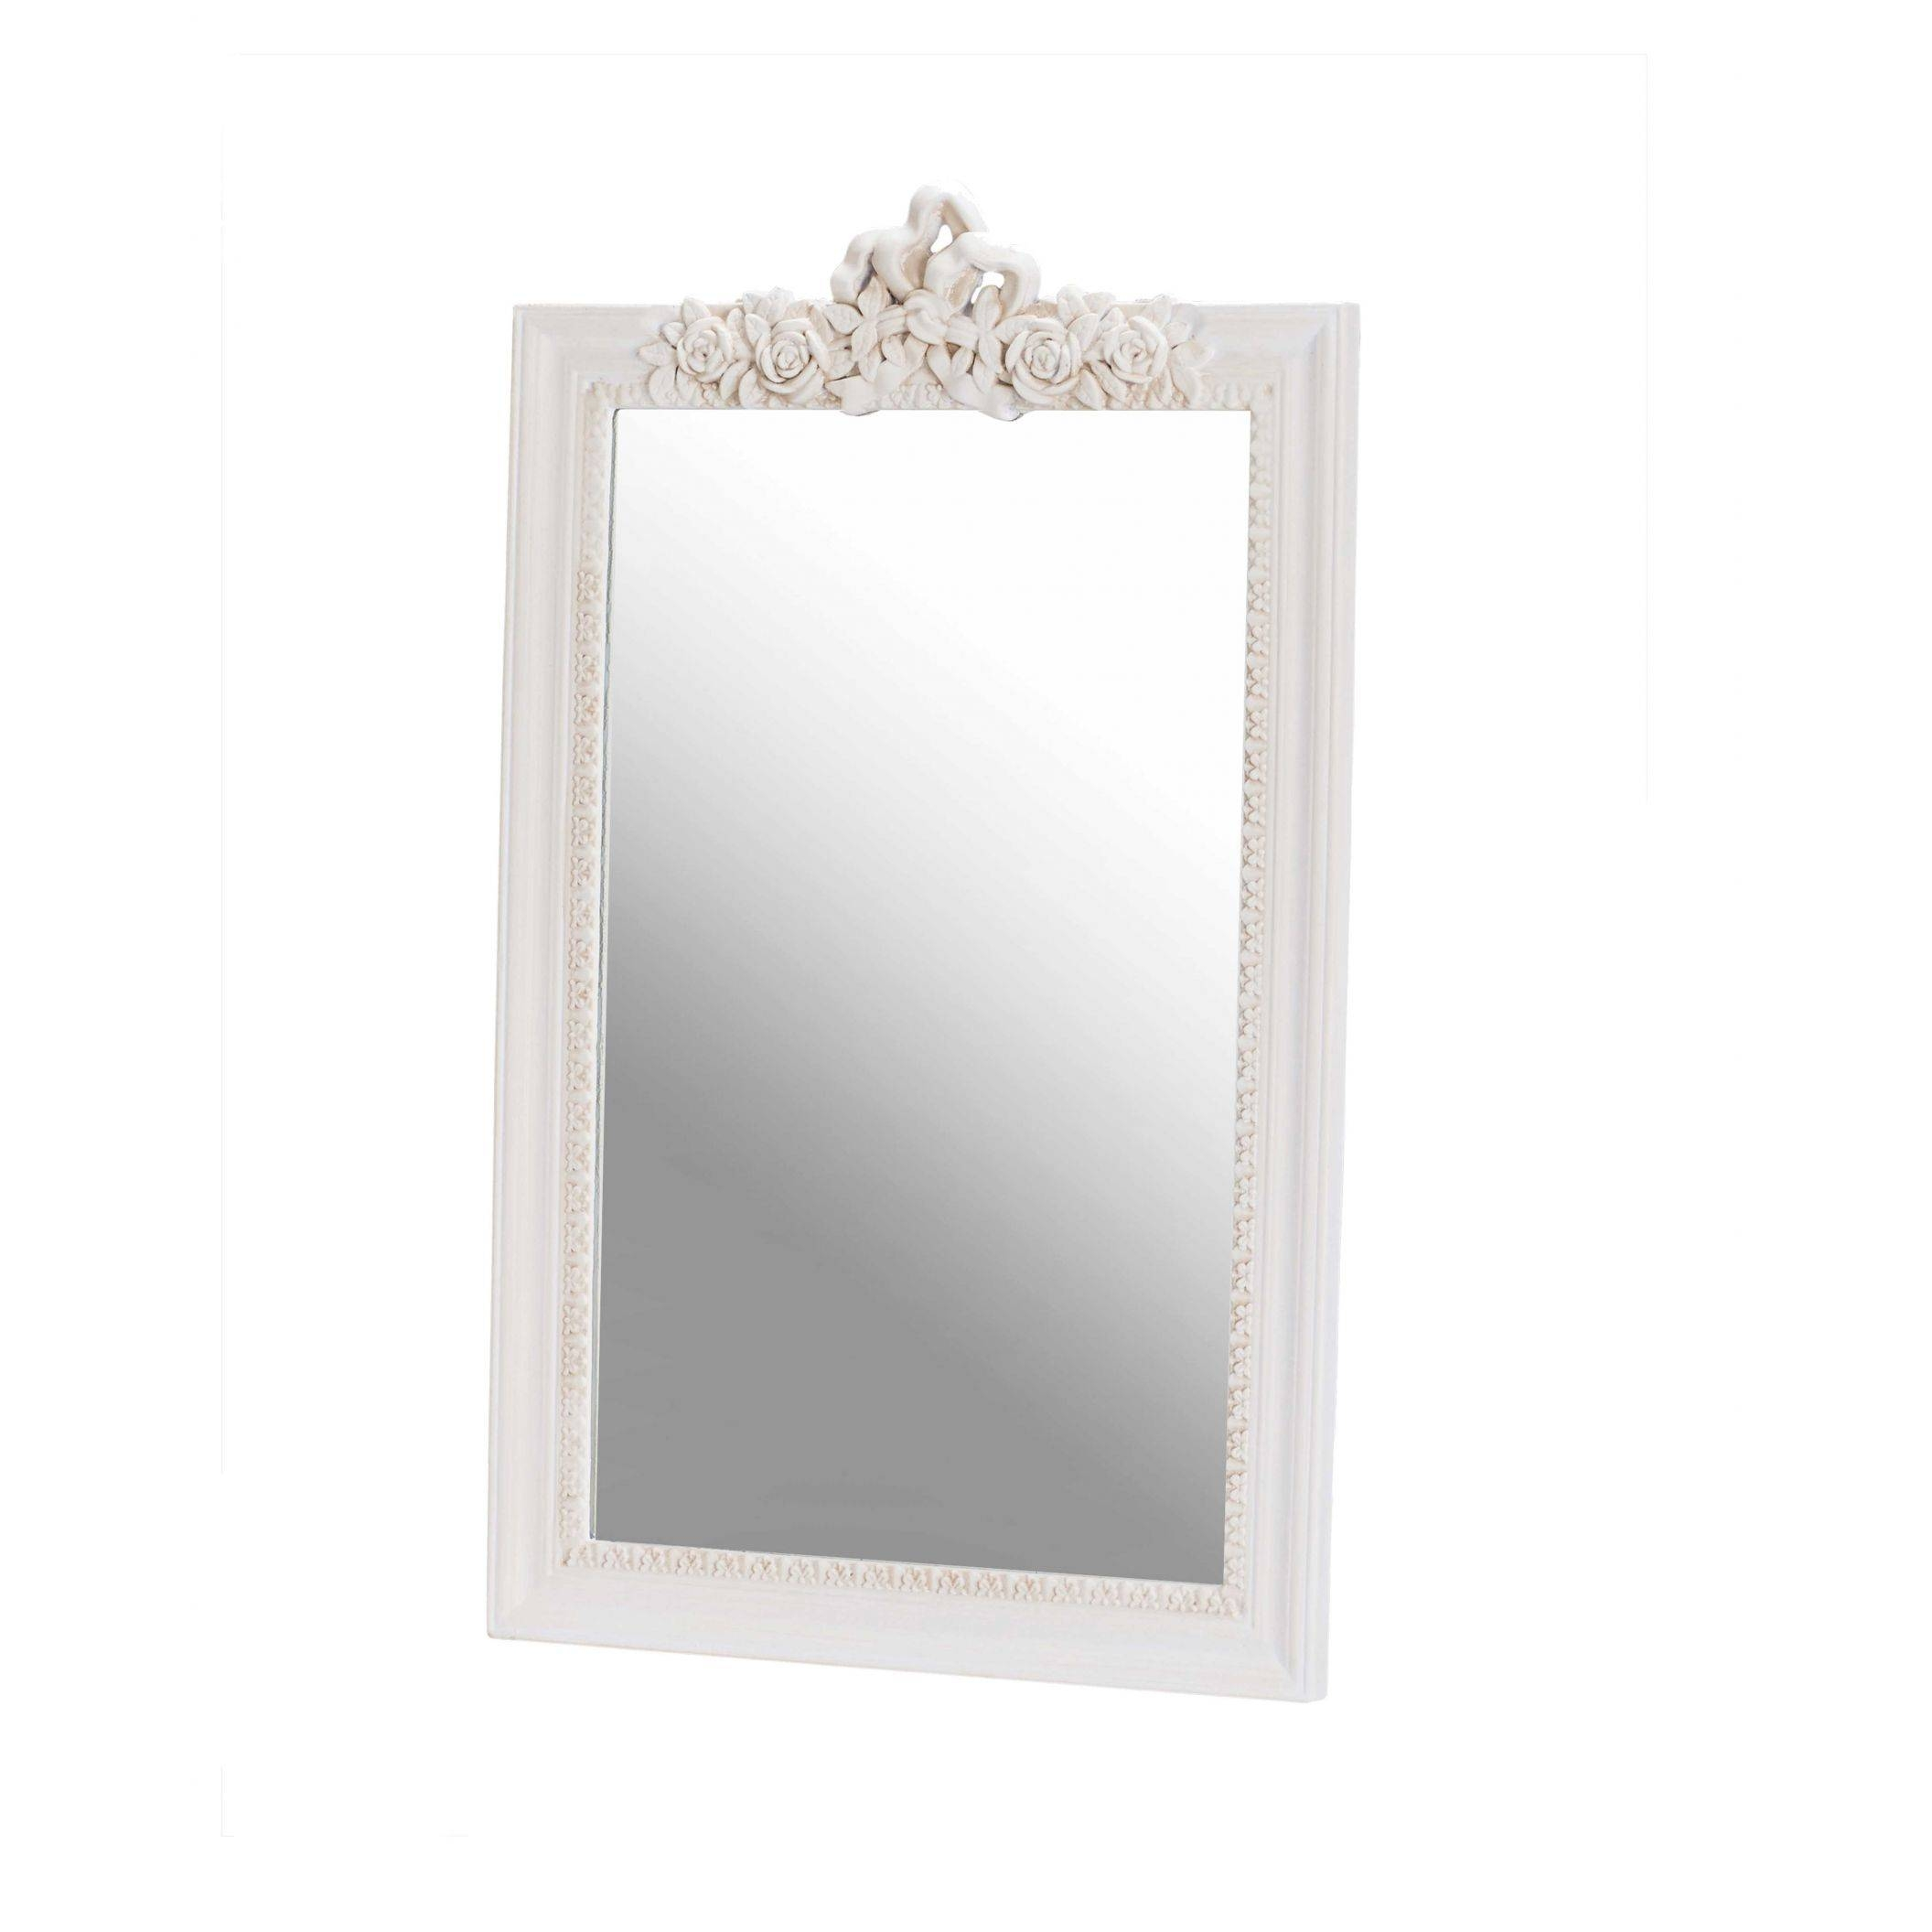 Juliette Antique French Style Wall Mirror | Shabby Chic Furniture With French Style Wall Mirrors (View 11 of 15)